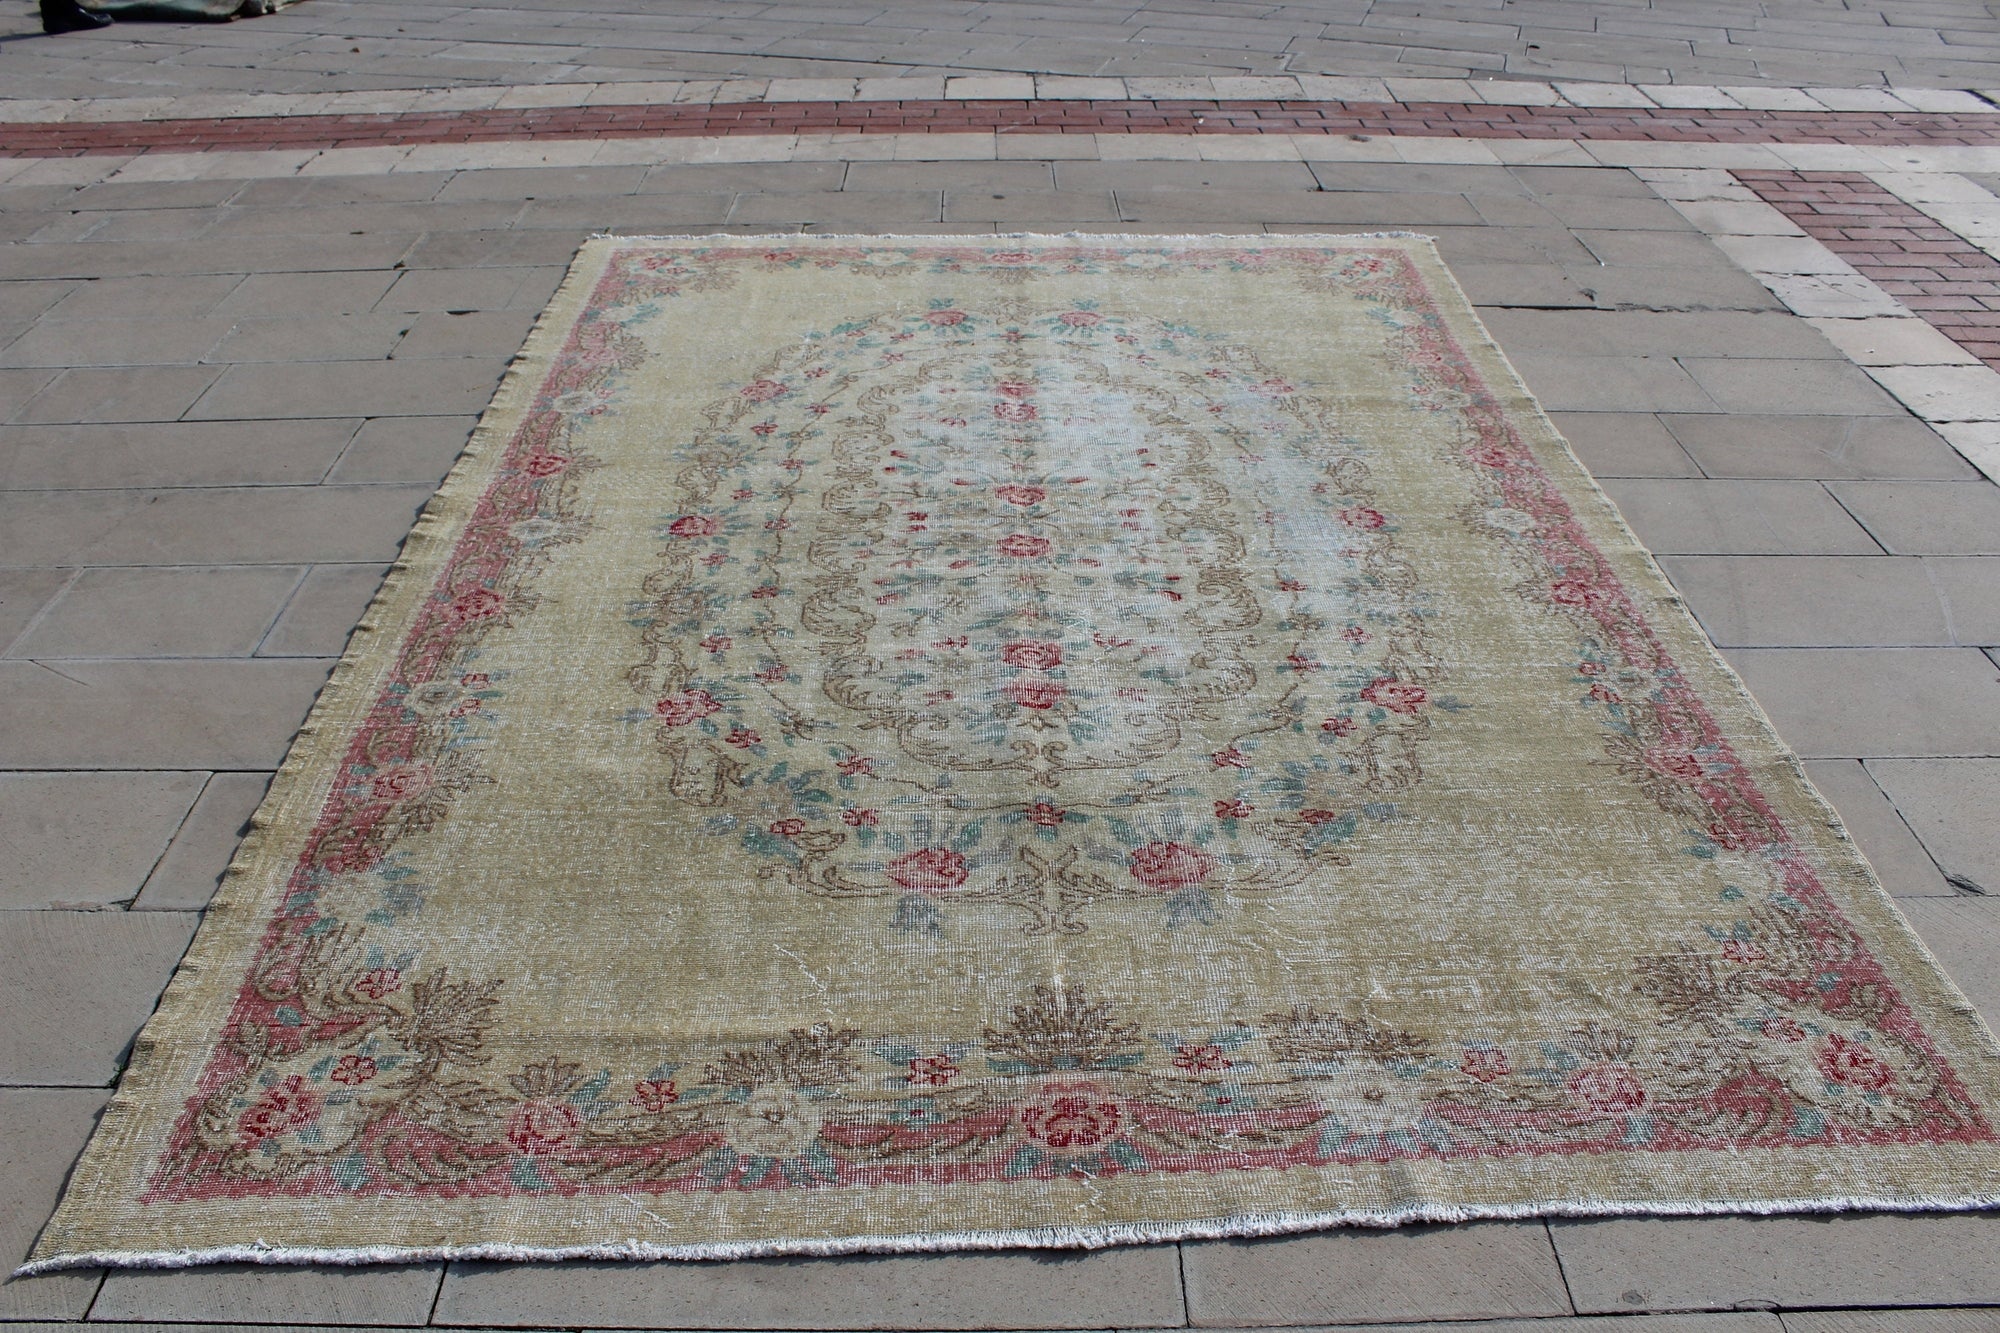 Turkey Rug, Beige Oushak Turkish Antique Floral Rug, Vintage Oushak Handwoven Area Rugs,  7X9.9 Feet  AG868